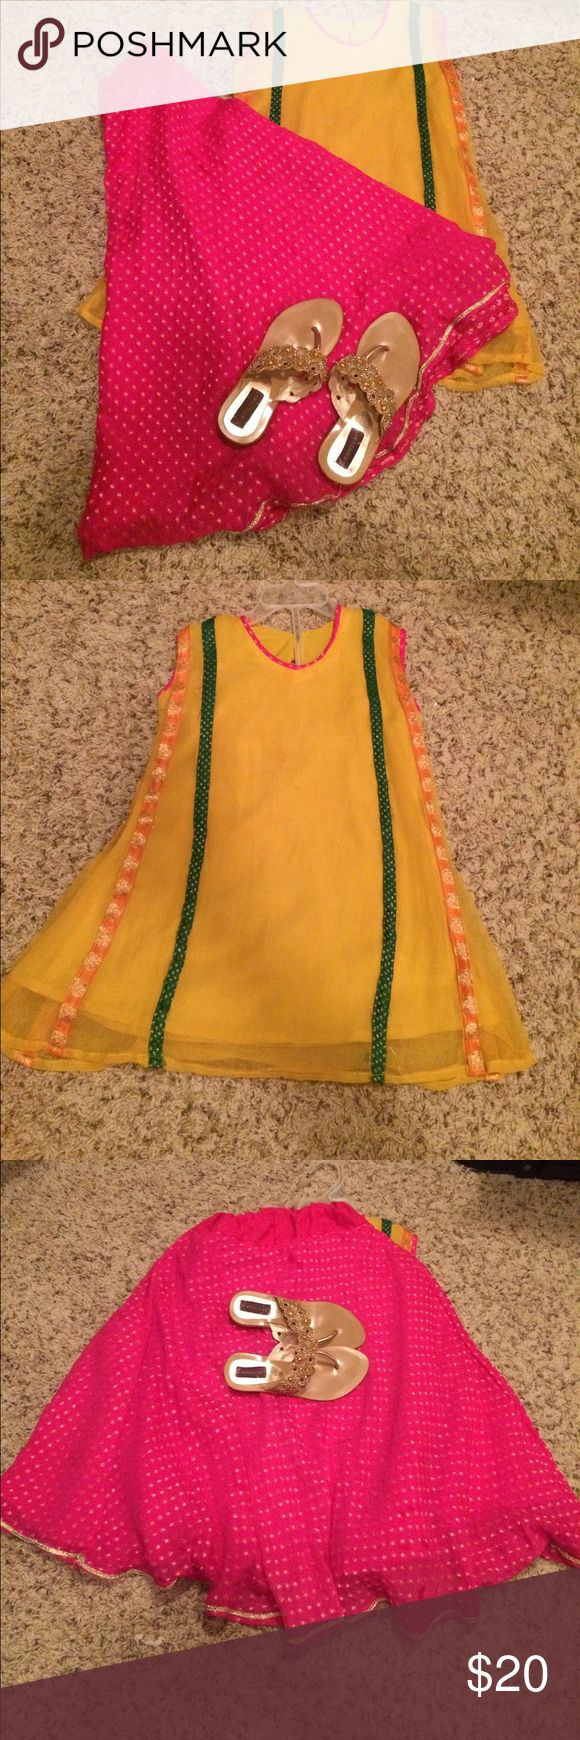 Two piece lehnga and kurti. Lehnga and kurti for girls ages 4-5 years old. Yellow, green and orange kurti with pink and gold lehnga. Used but it is in good condition. Other